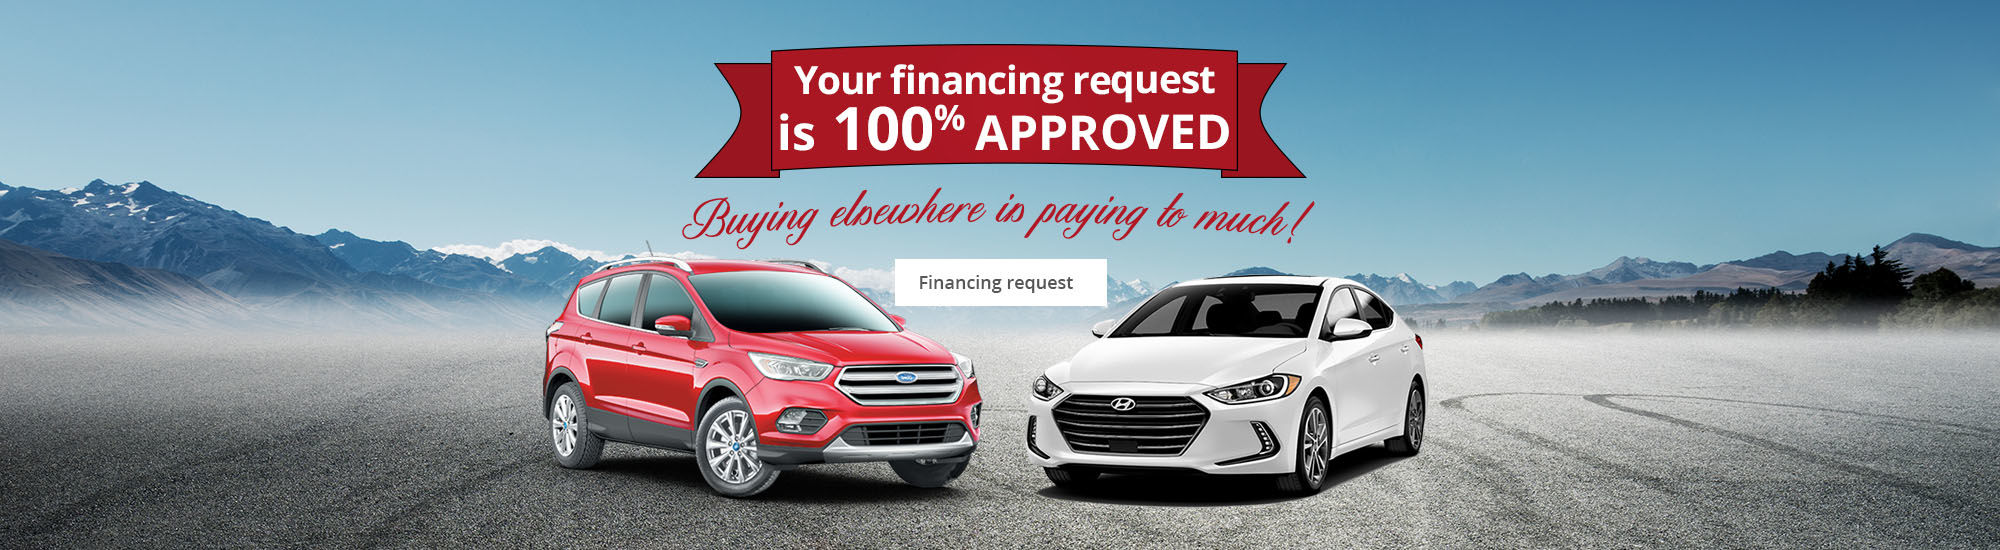 Your financing request is 100% approved